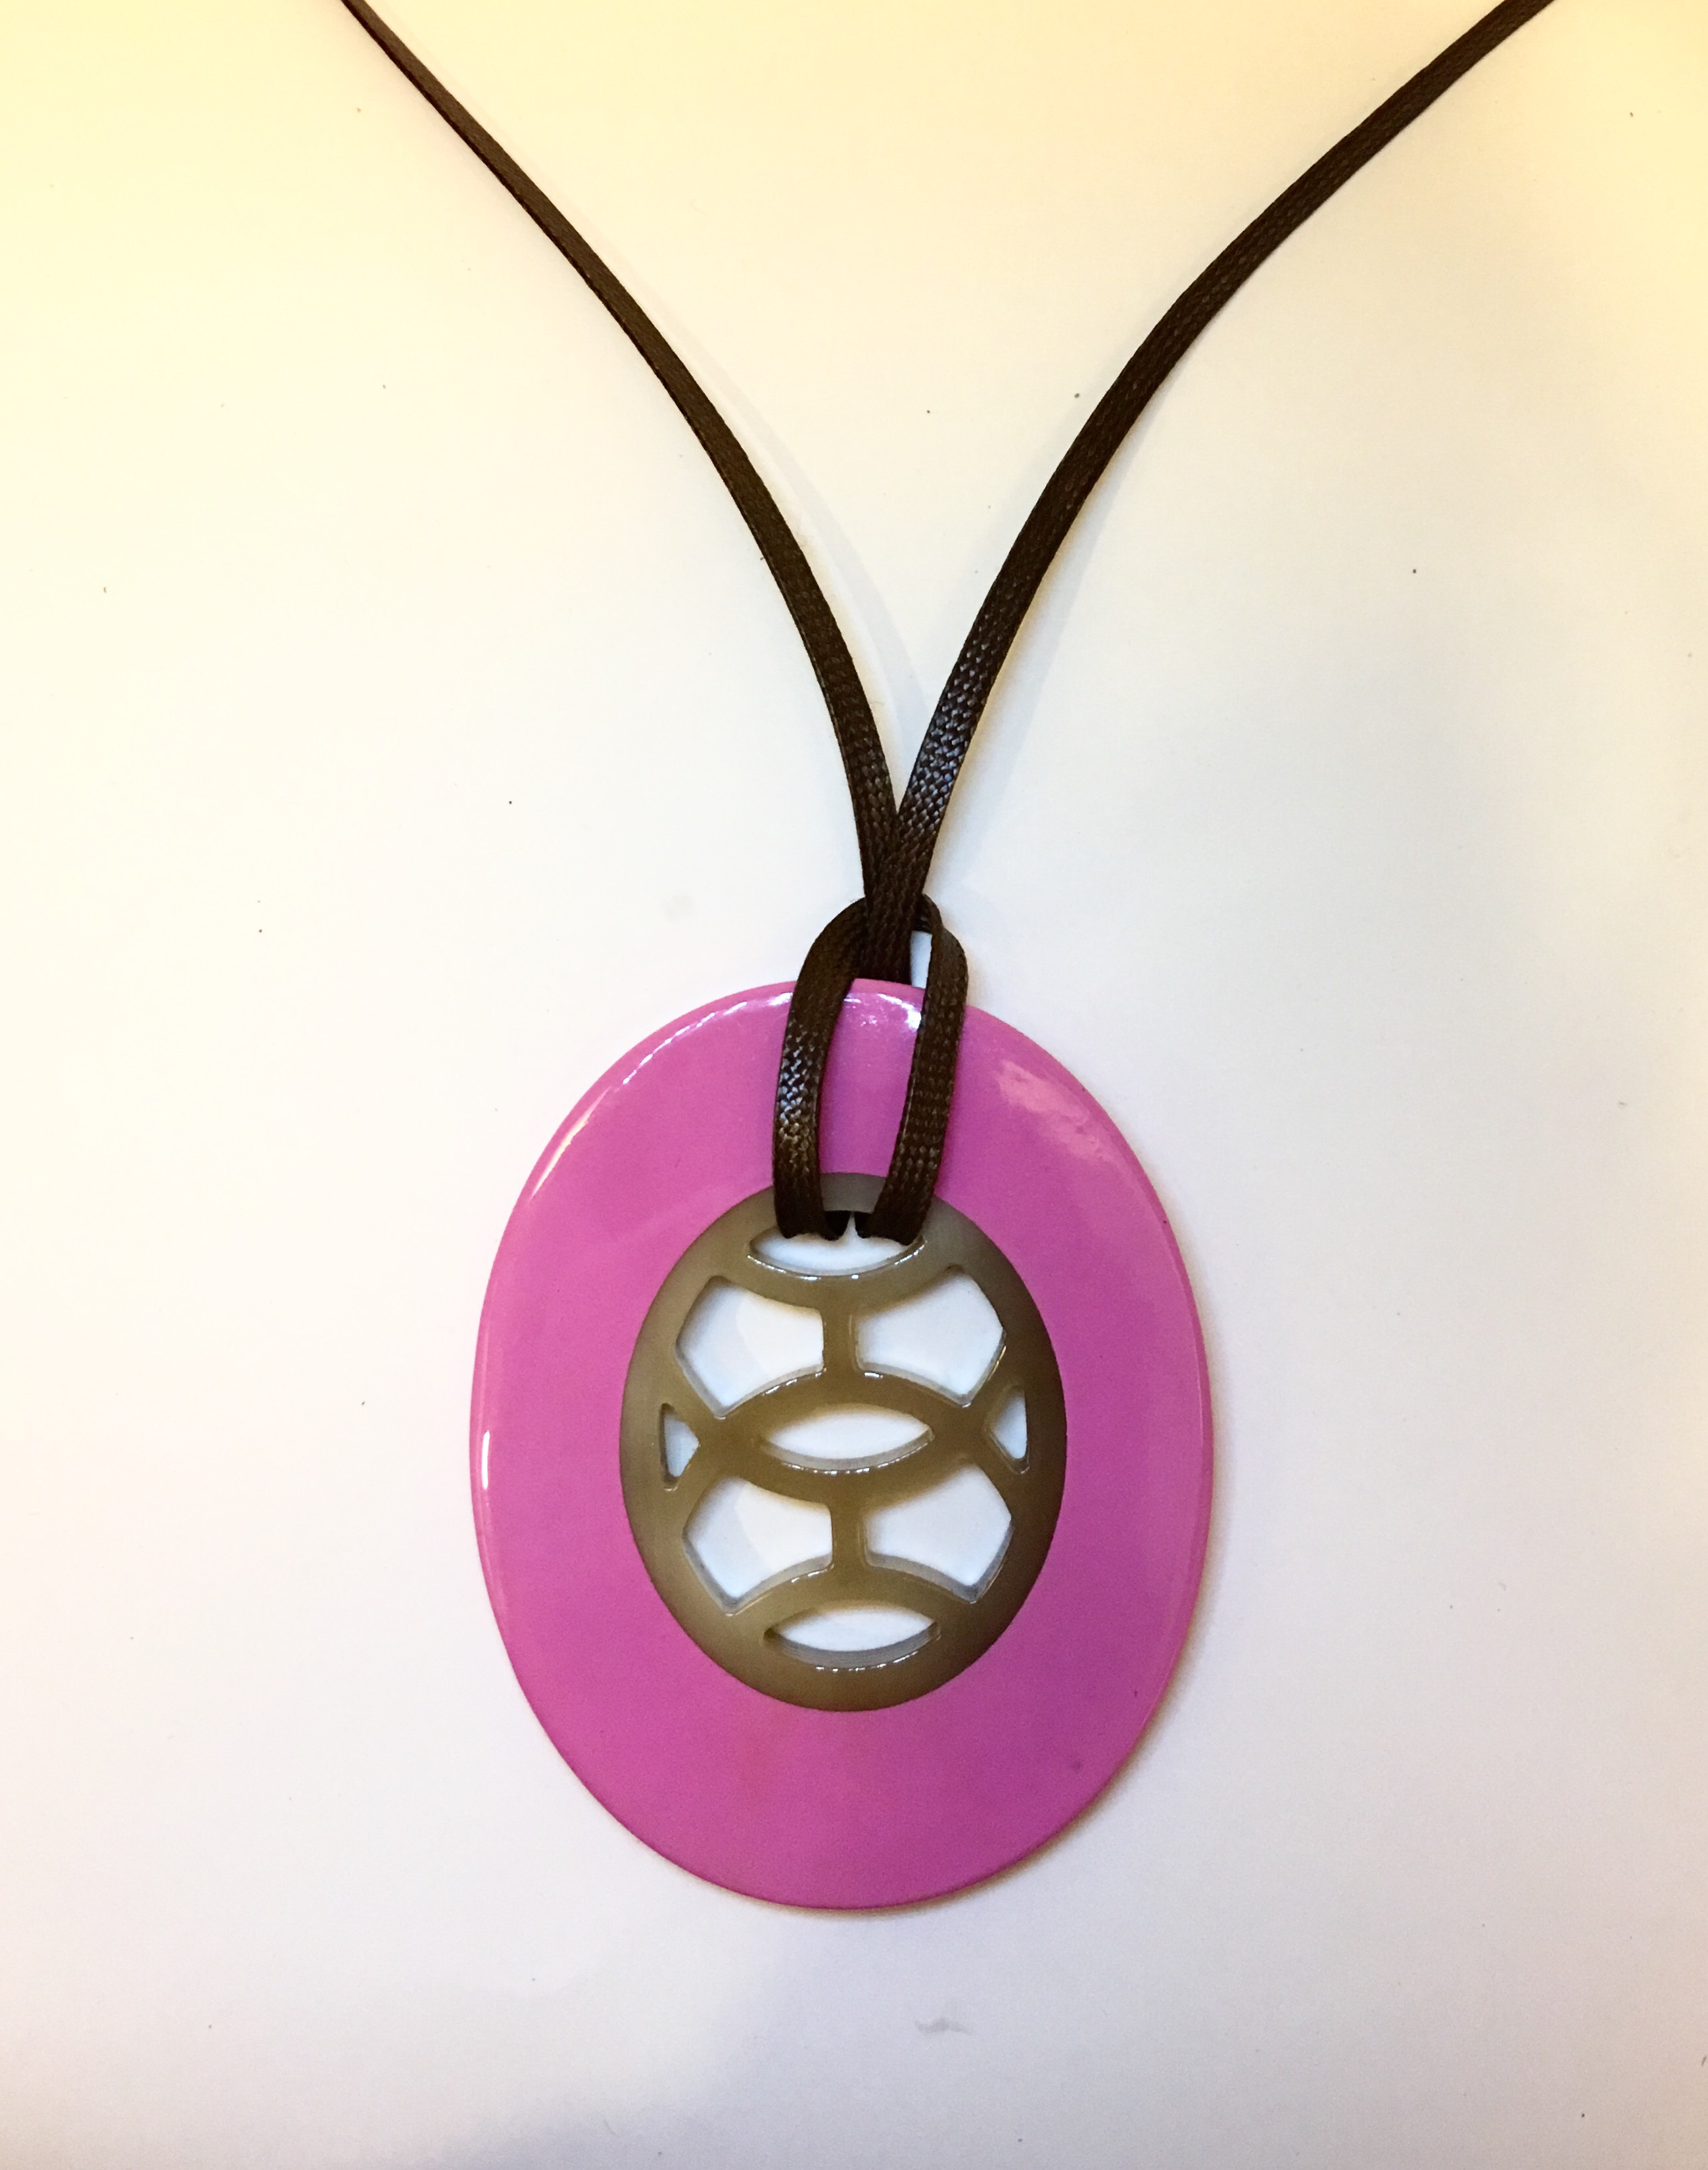 Buffalo Horn Lacquer Pendant Jewelry